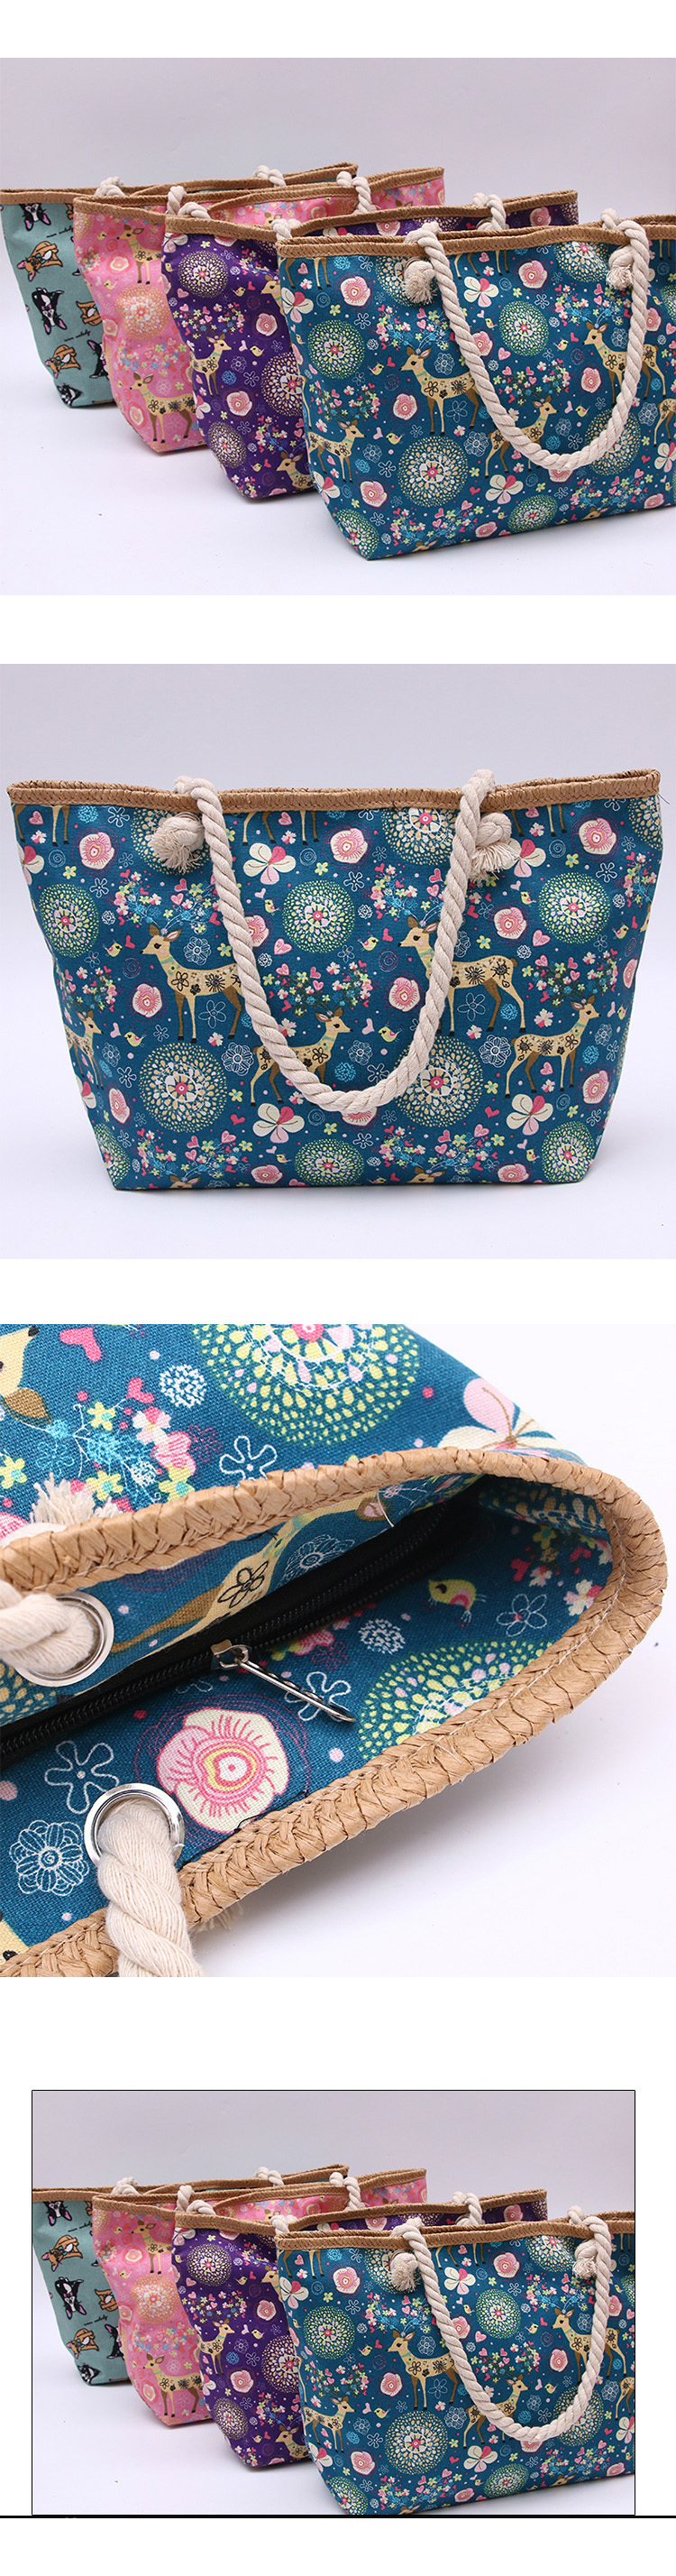 hot selling newest classical flower fashion zipper beach bag